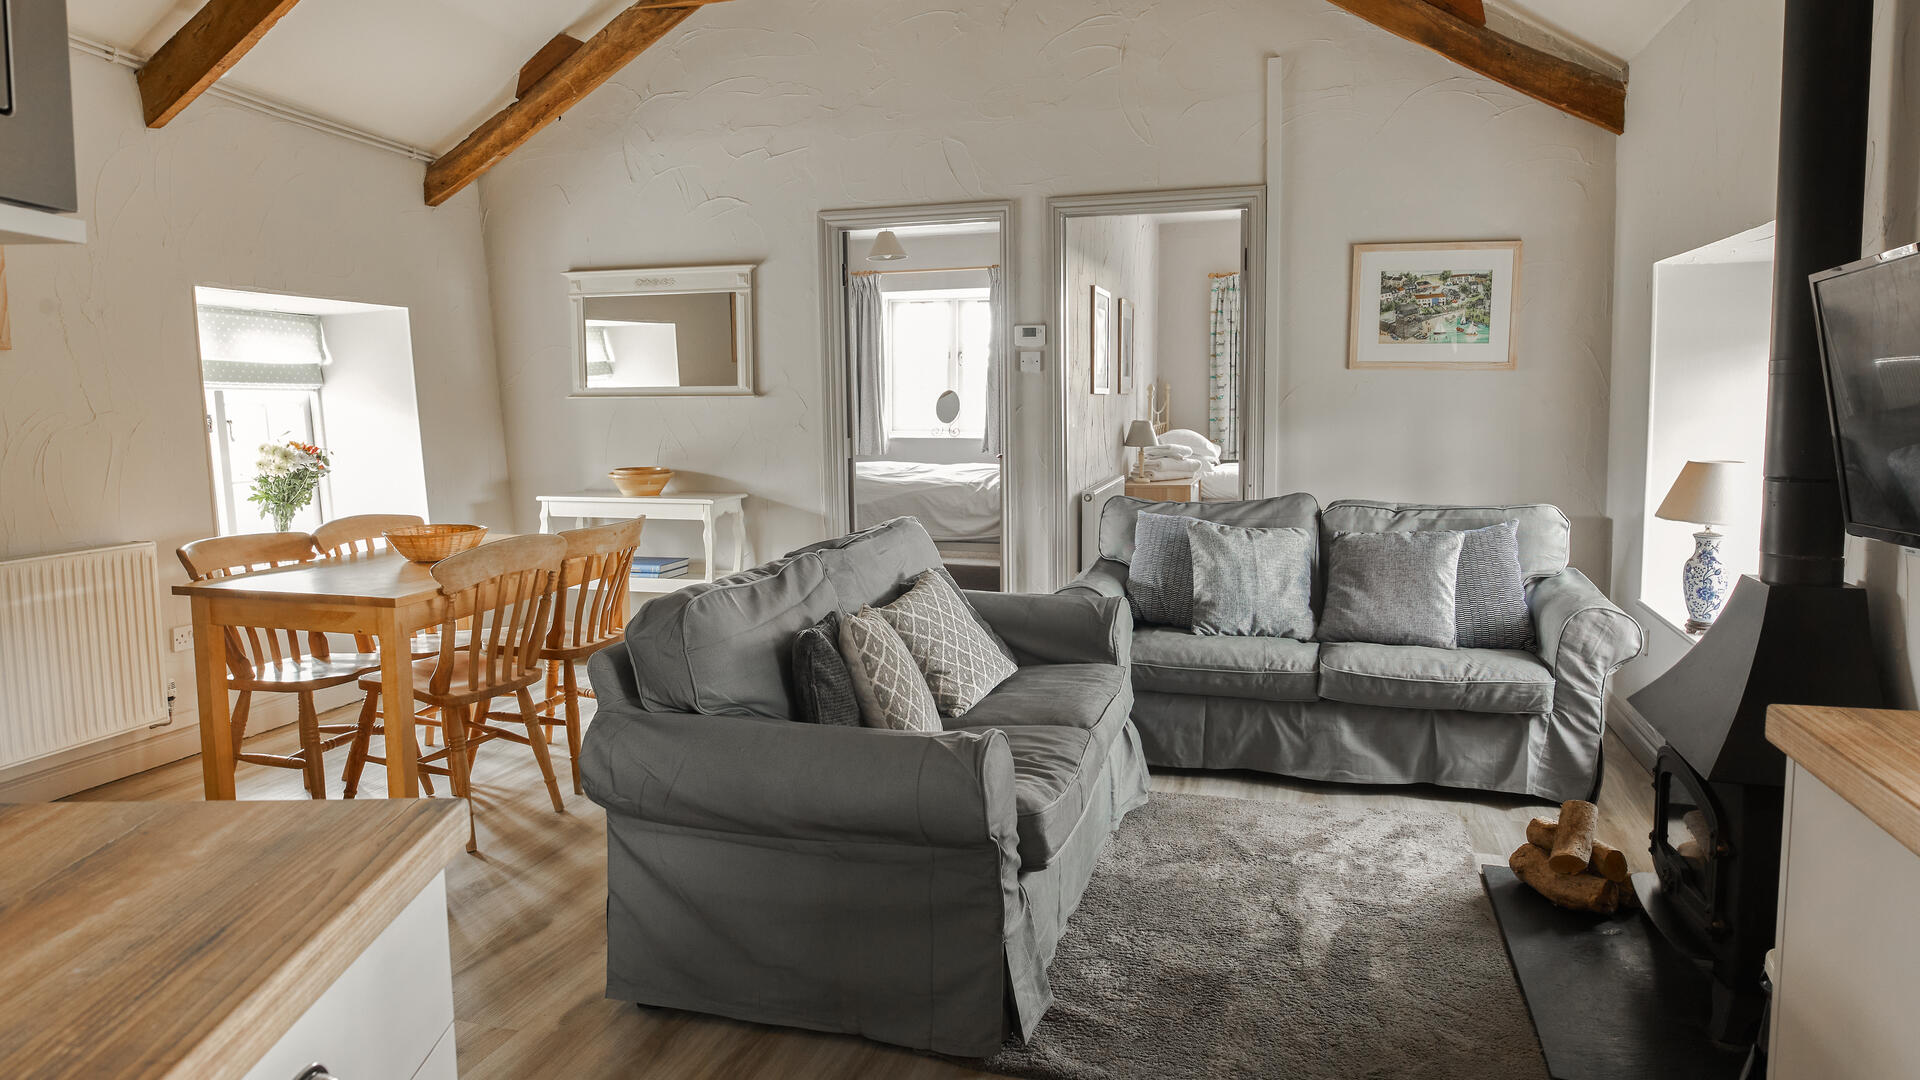 2 Bedroom Cottage/shared facilities in Cornwall, United Kingdom